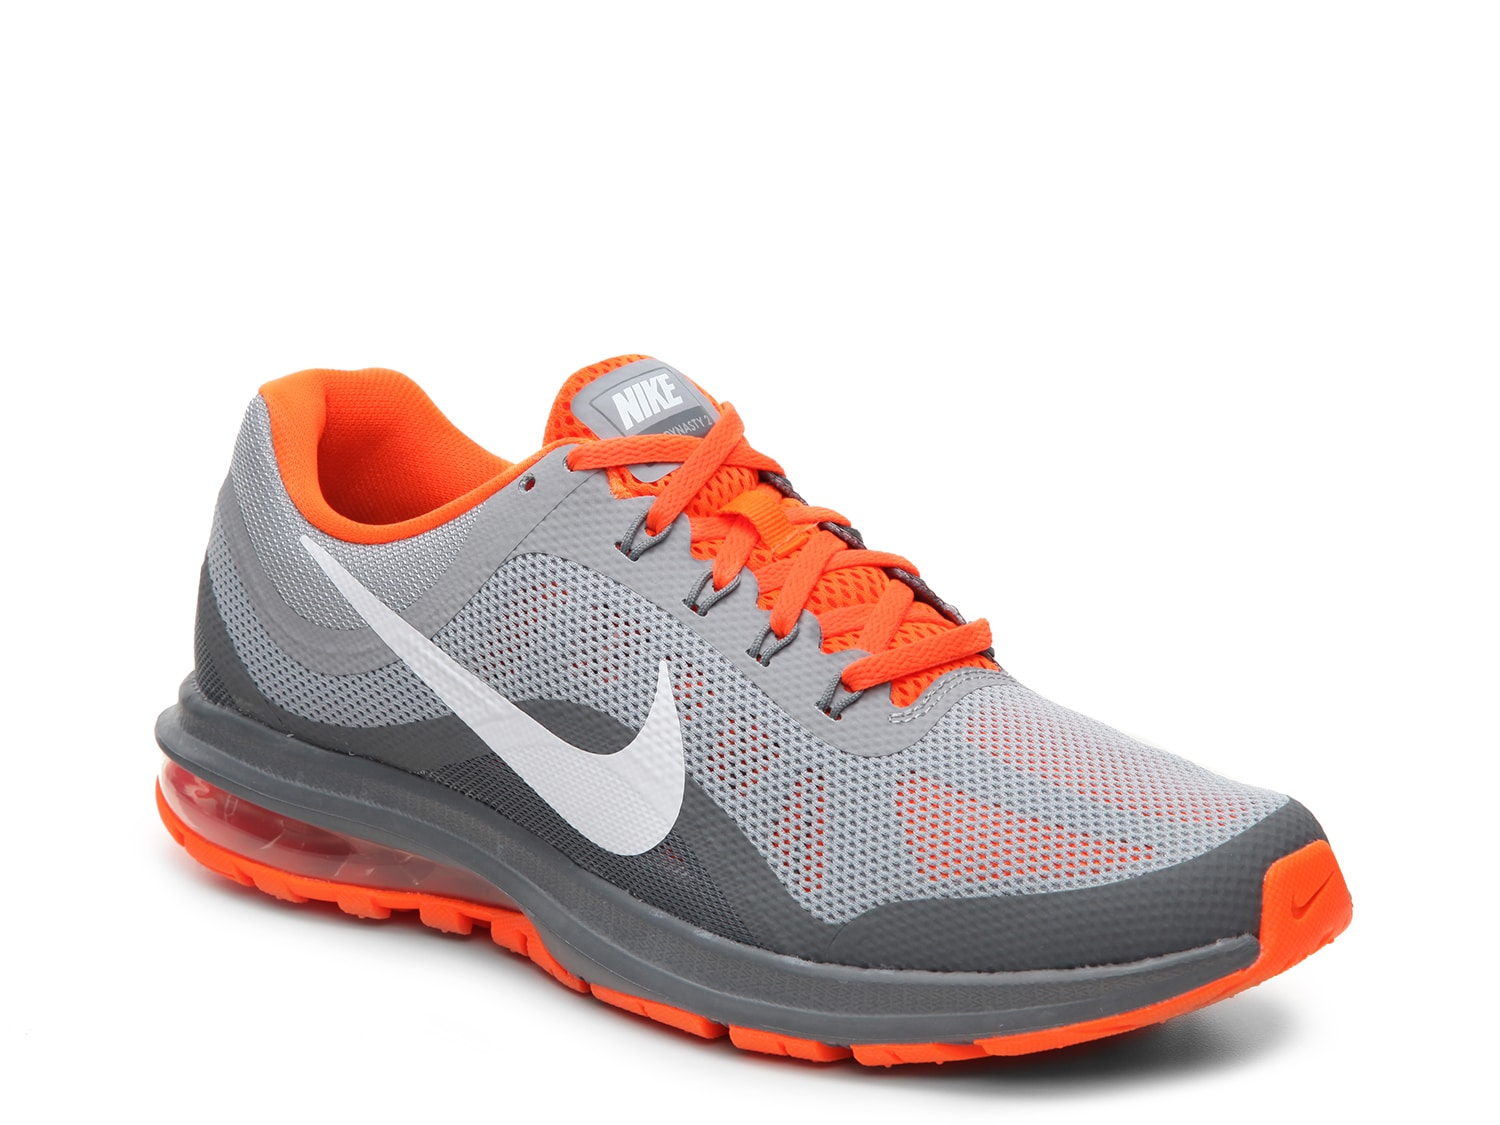 Nike Air Max Dynasty 2 Performance Running Shoe - Men's | DSW